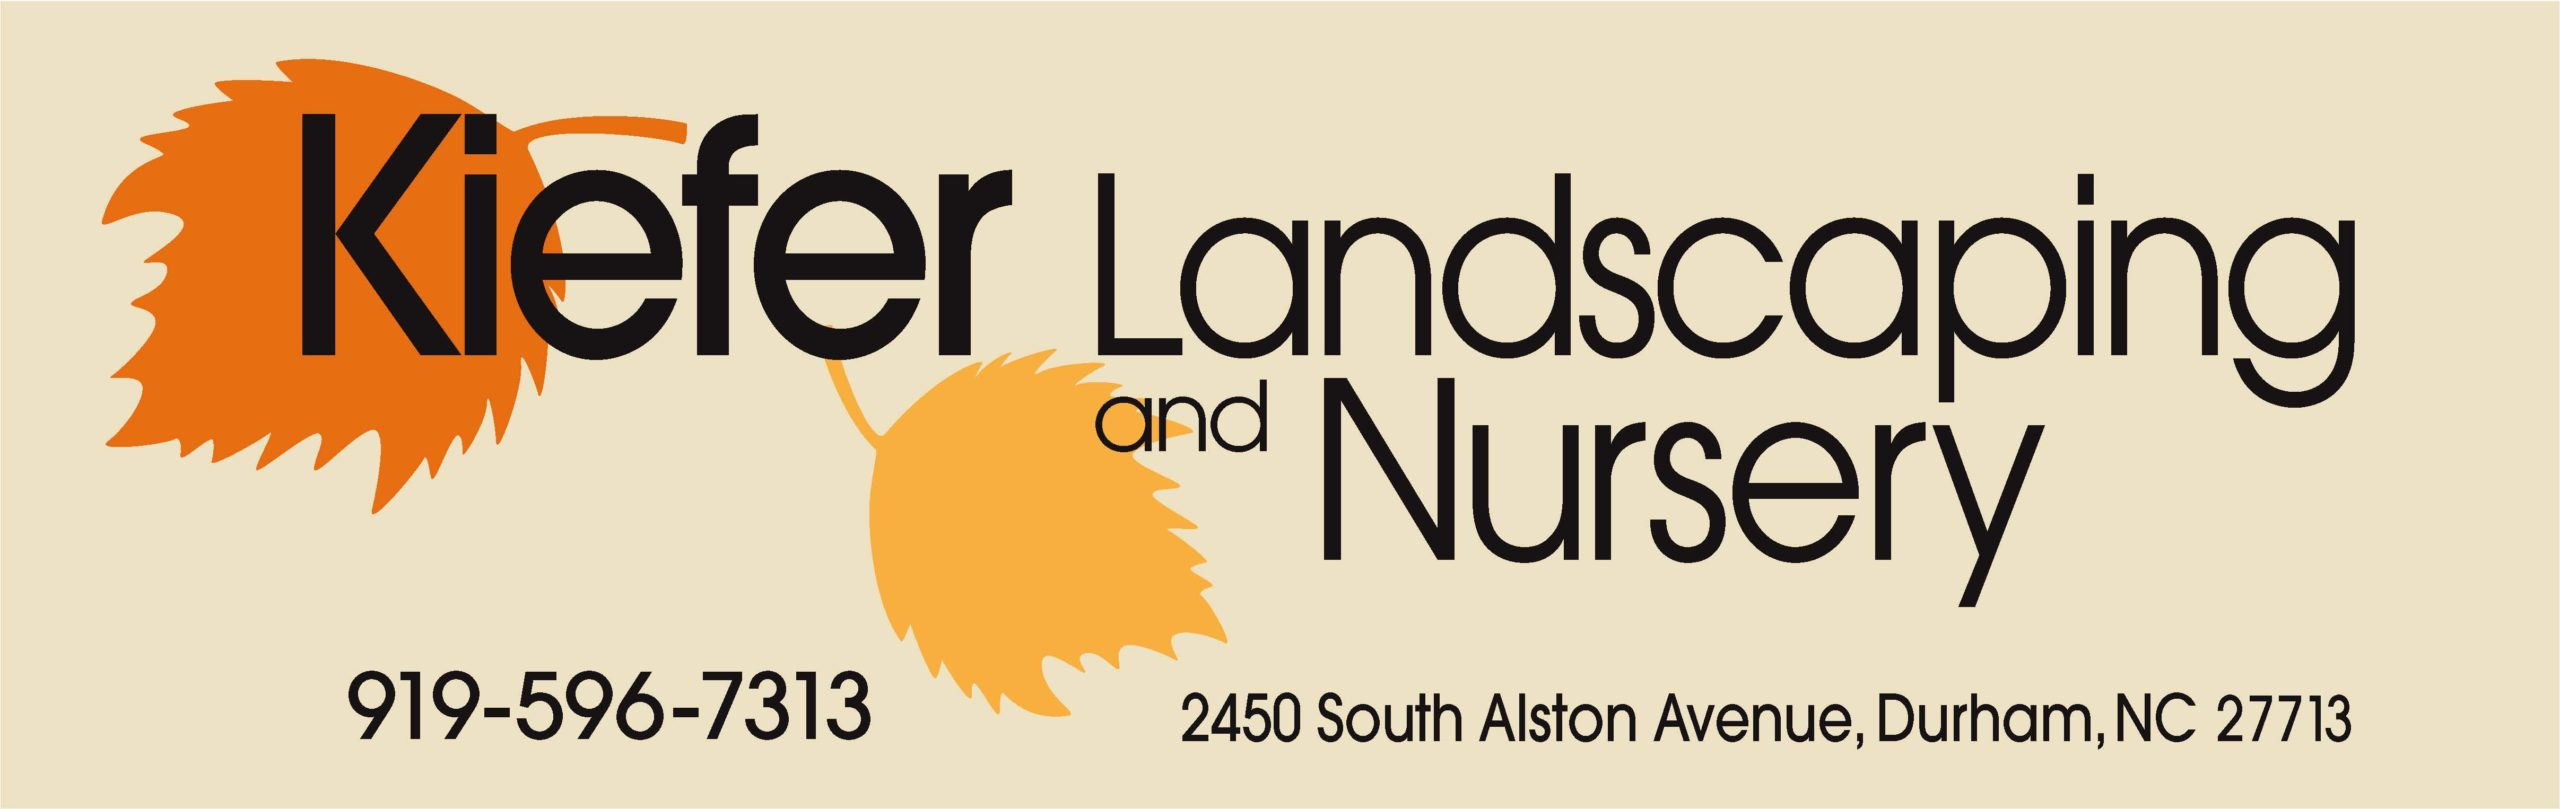 Kiefer Landscaping & Nursery